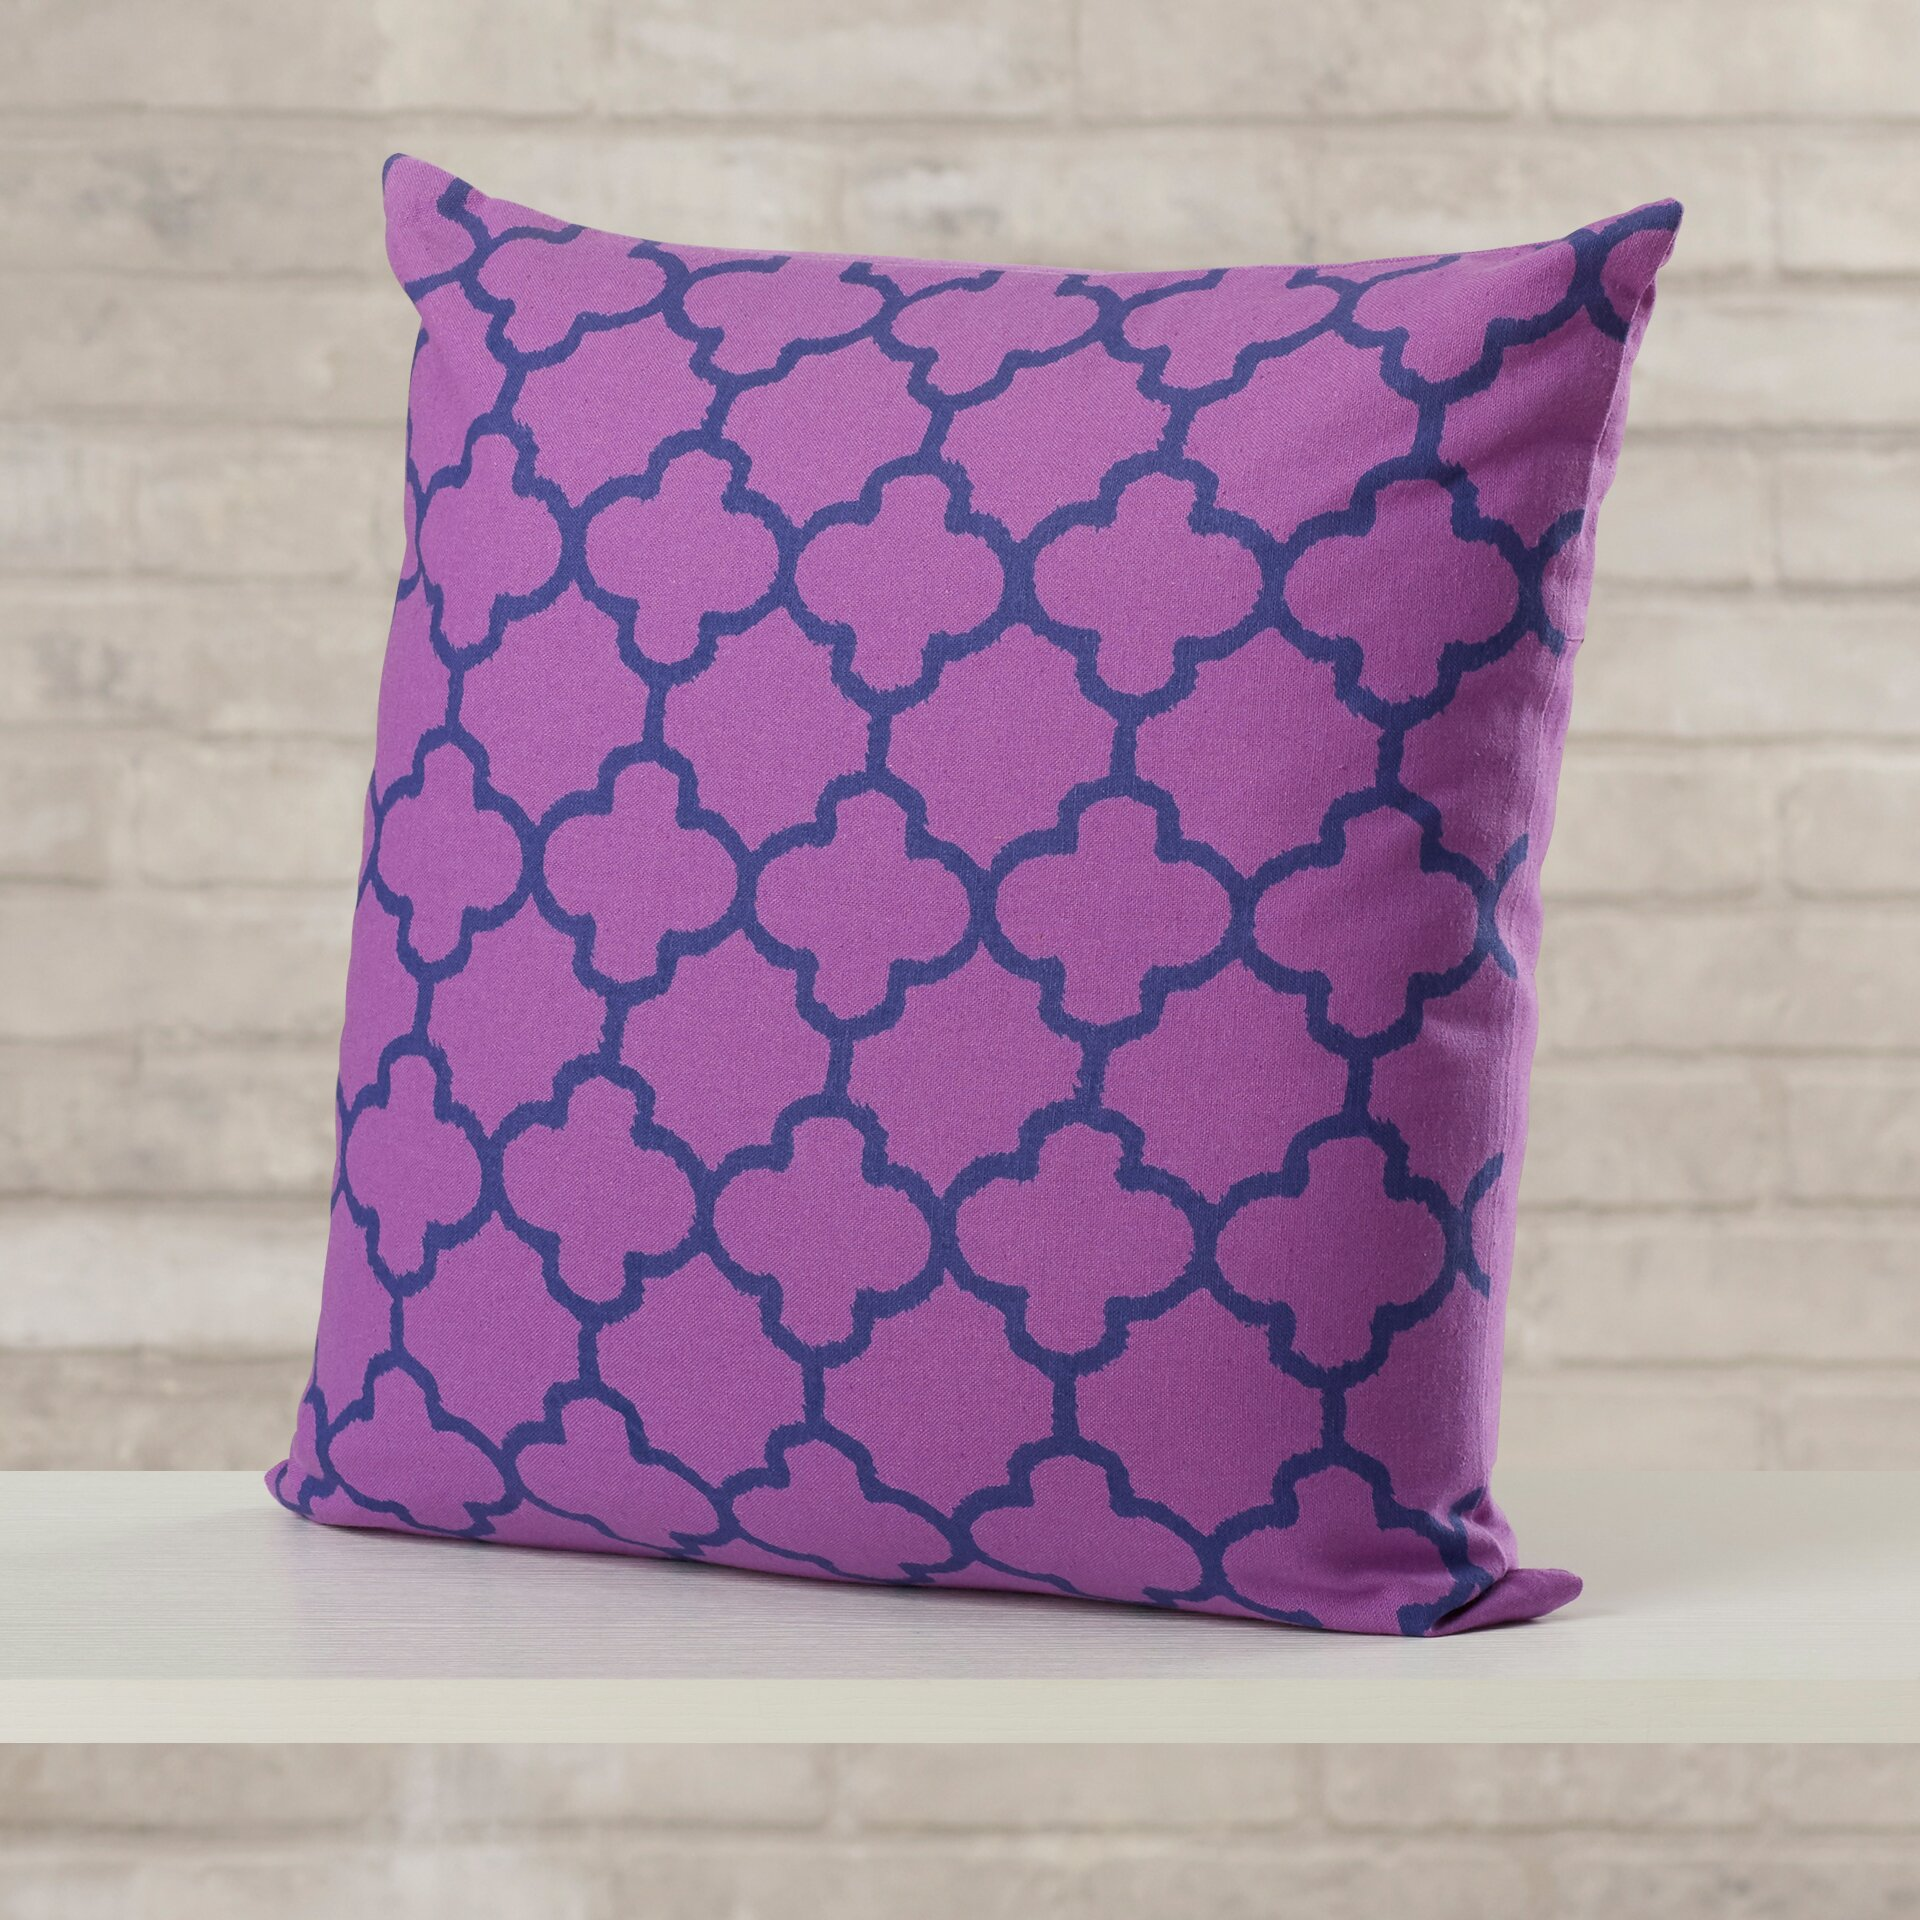 Throw Pillow Gallery : Varick Gallery Arbogast Print Cotton Throw Pillow & Reviews Wayfair.ca